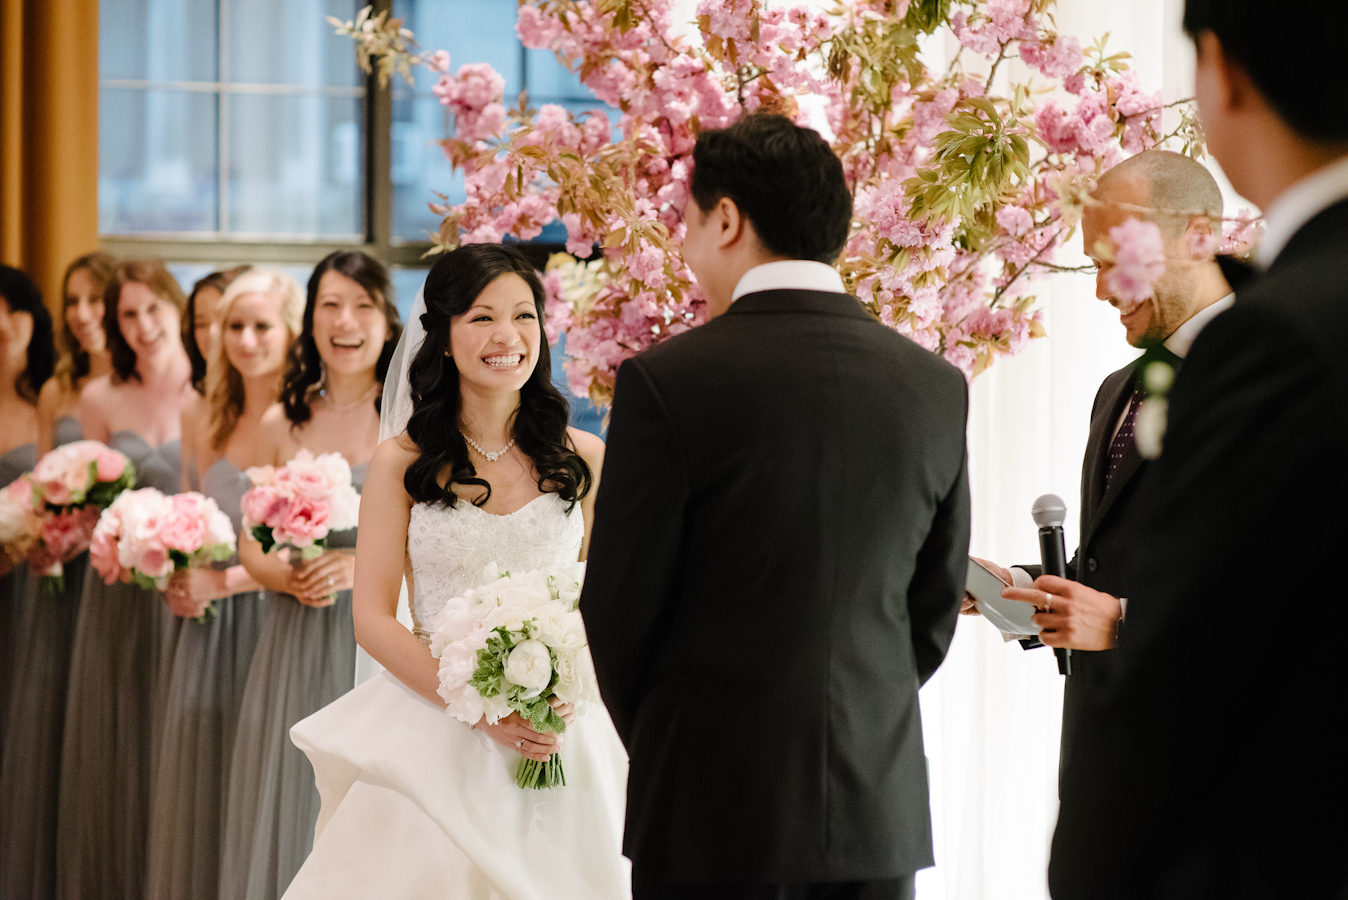 four seasons hotel wedding ang weddings and events brian hatton photography-27.jpg